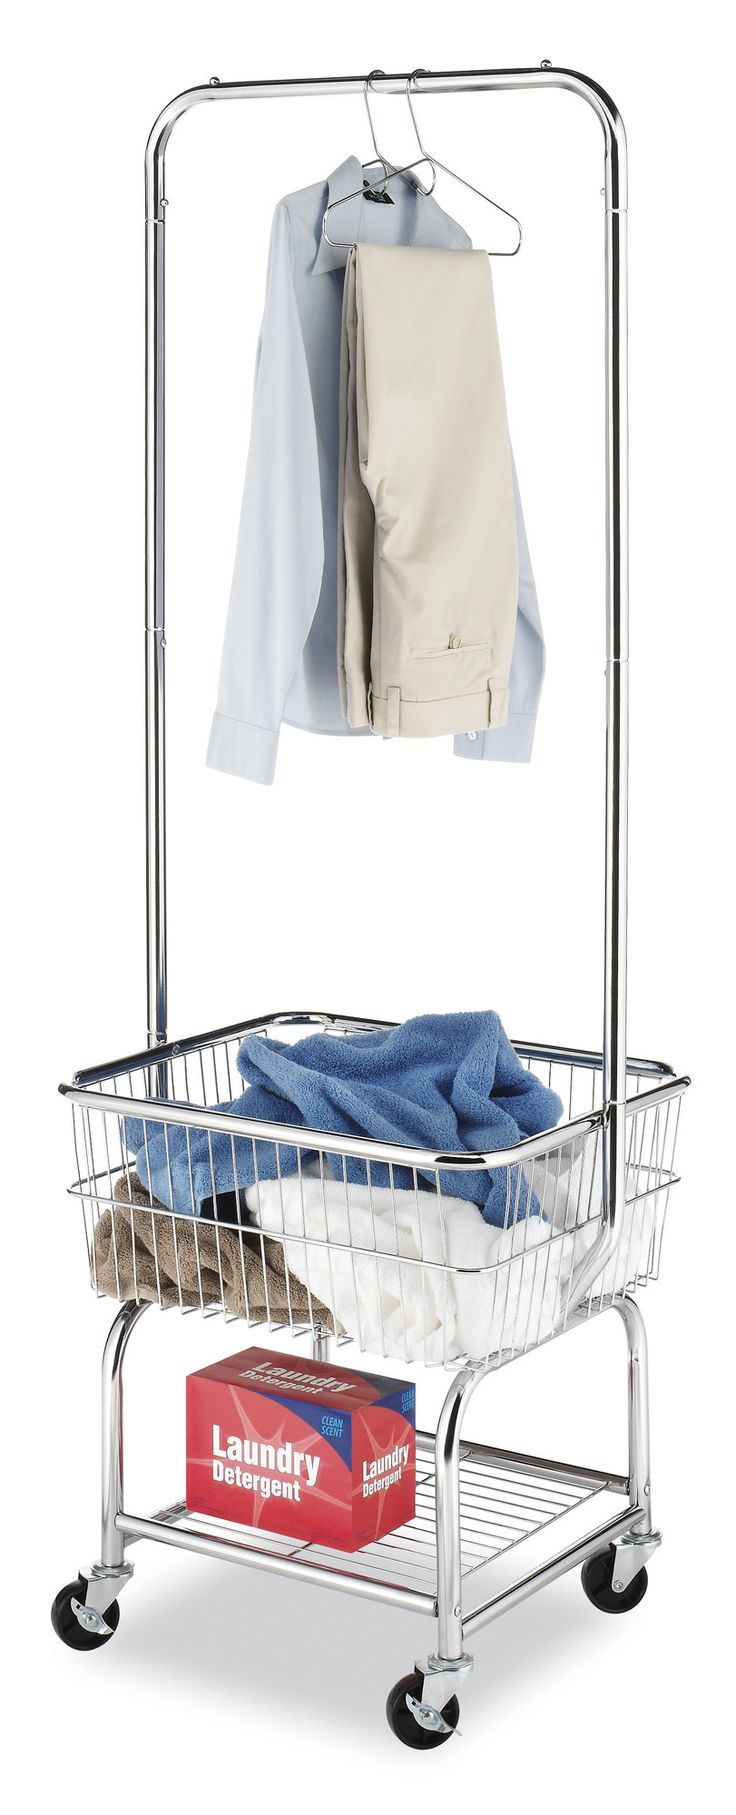 Features:  -Laundry butler.  -Can be extremely helpful in any home environment.  -High quality wheels.  -Chrome wire frame basket and a hanging bar for convenience.  Style: -Freestanding Drying Racks.